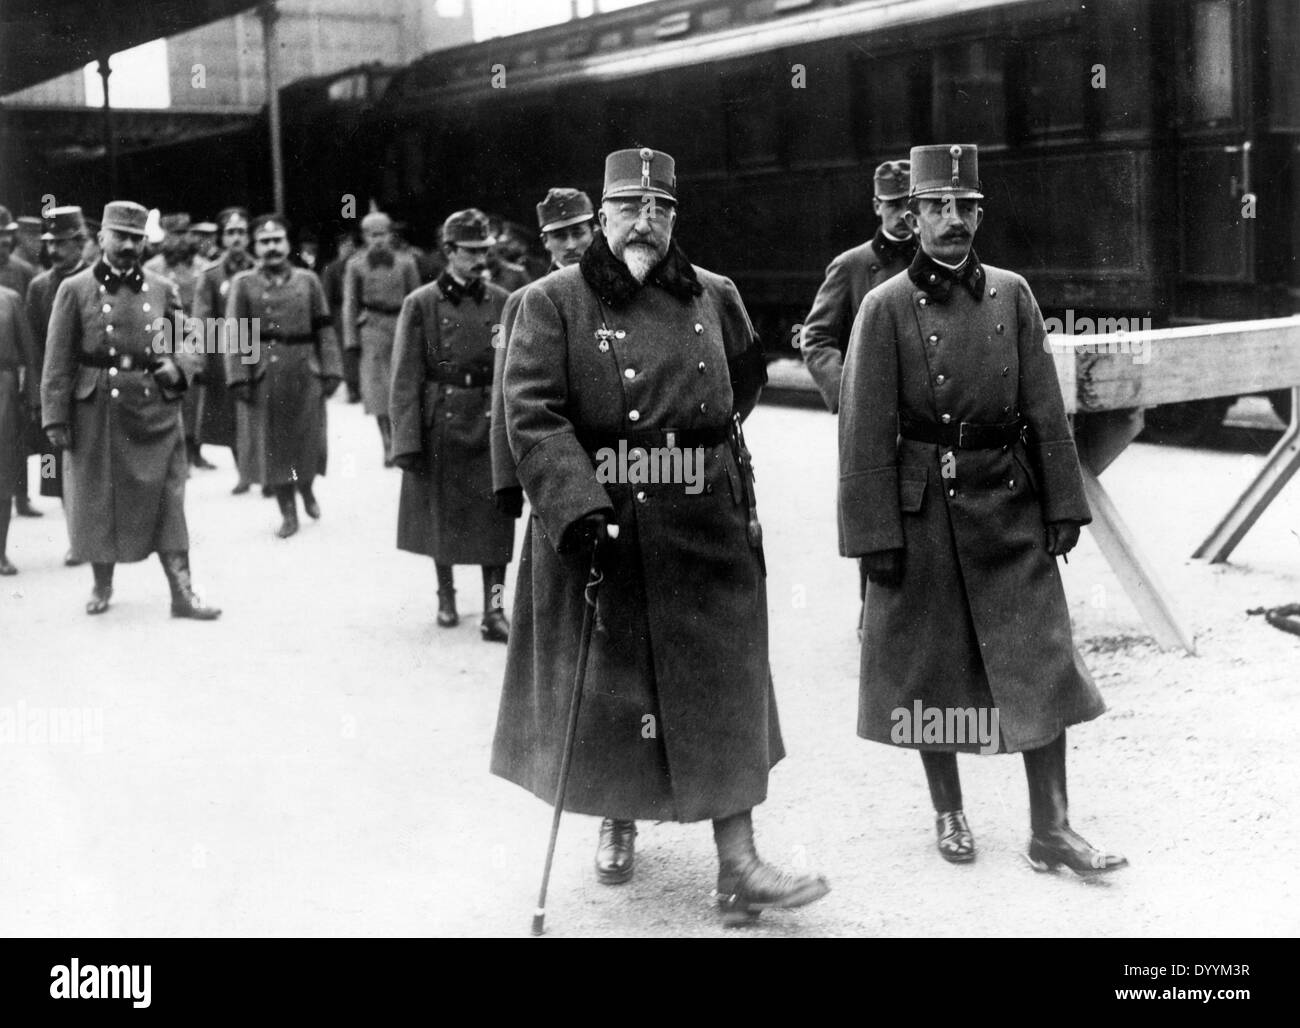 King Ferdinand and Emperor Charles I., 1917 - Stock Image